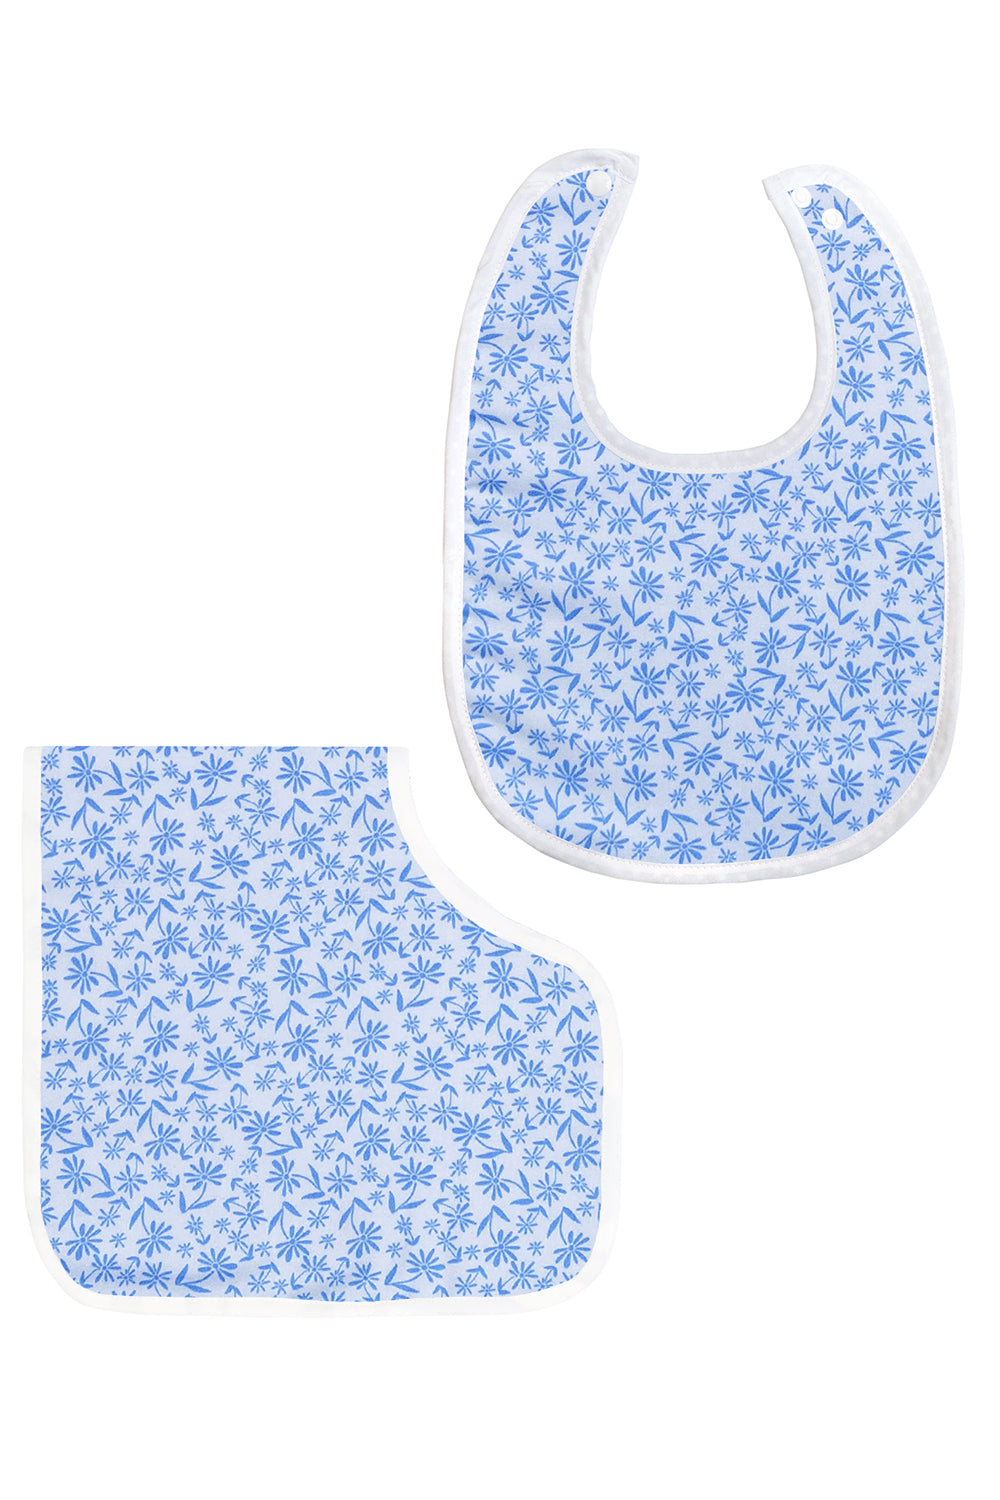 Bamboo Bib and Burp Cloth Set Blue Floral Pattern